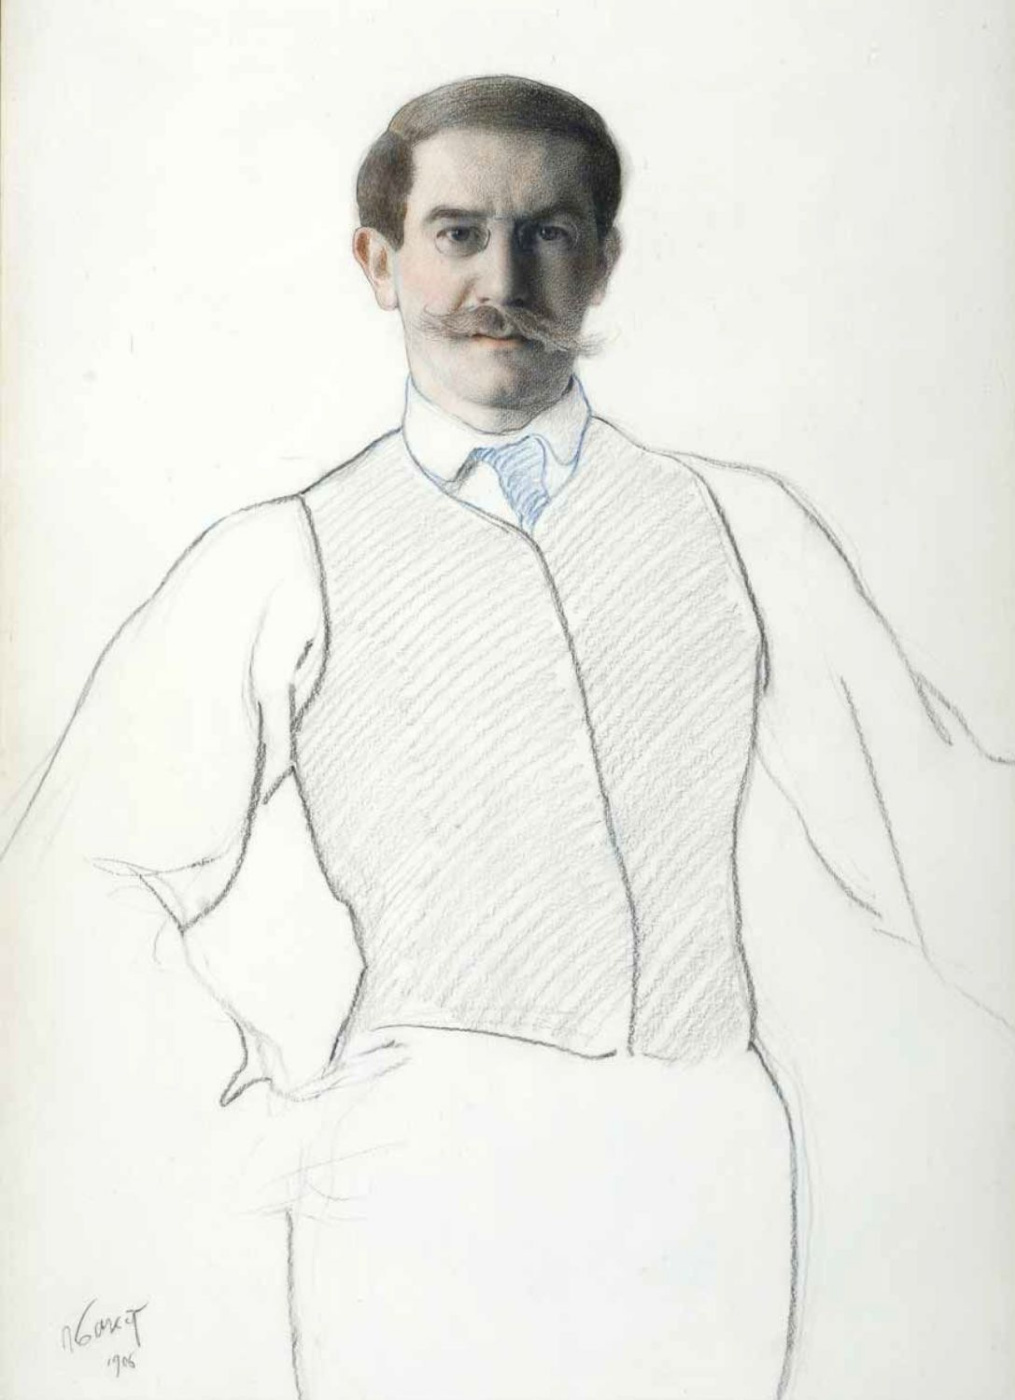 Lev (Leon) Bakst. Self-portrait